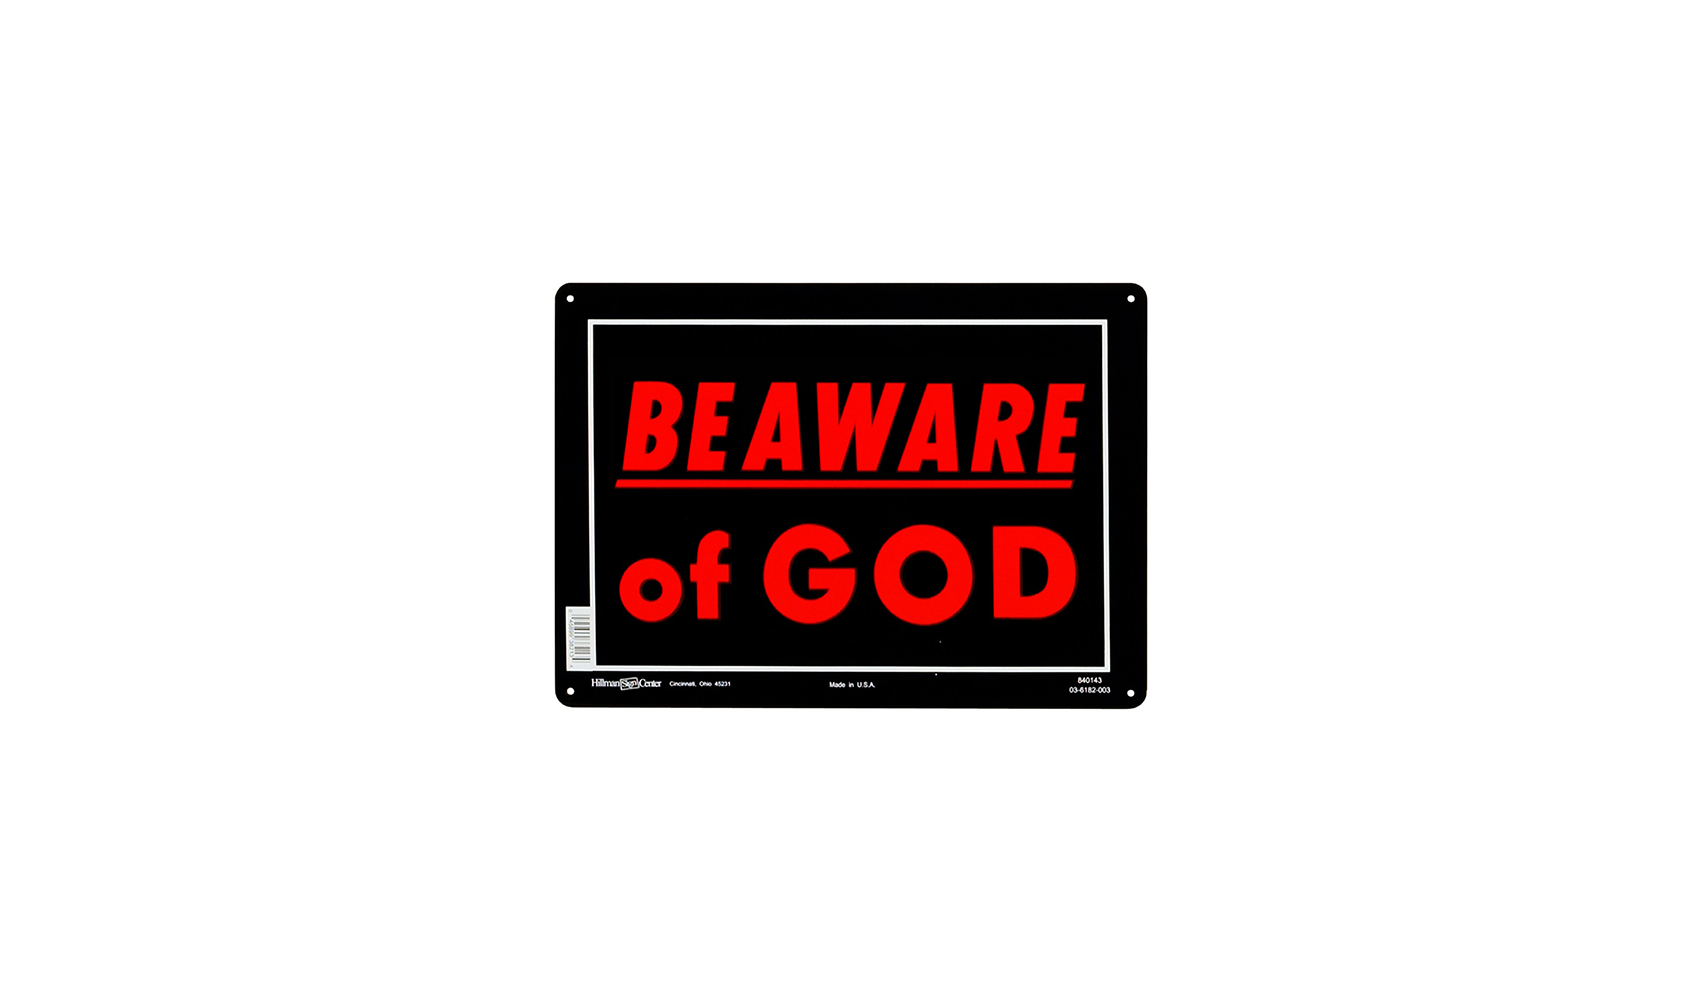 be-aware-god-by-ethan-solouki